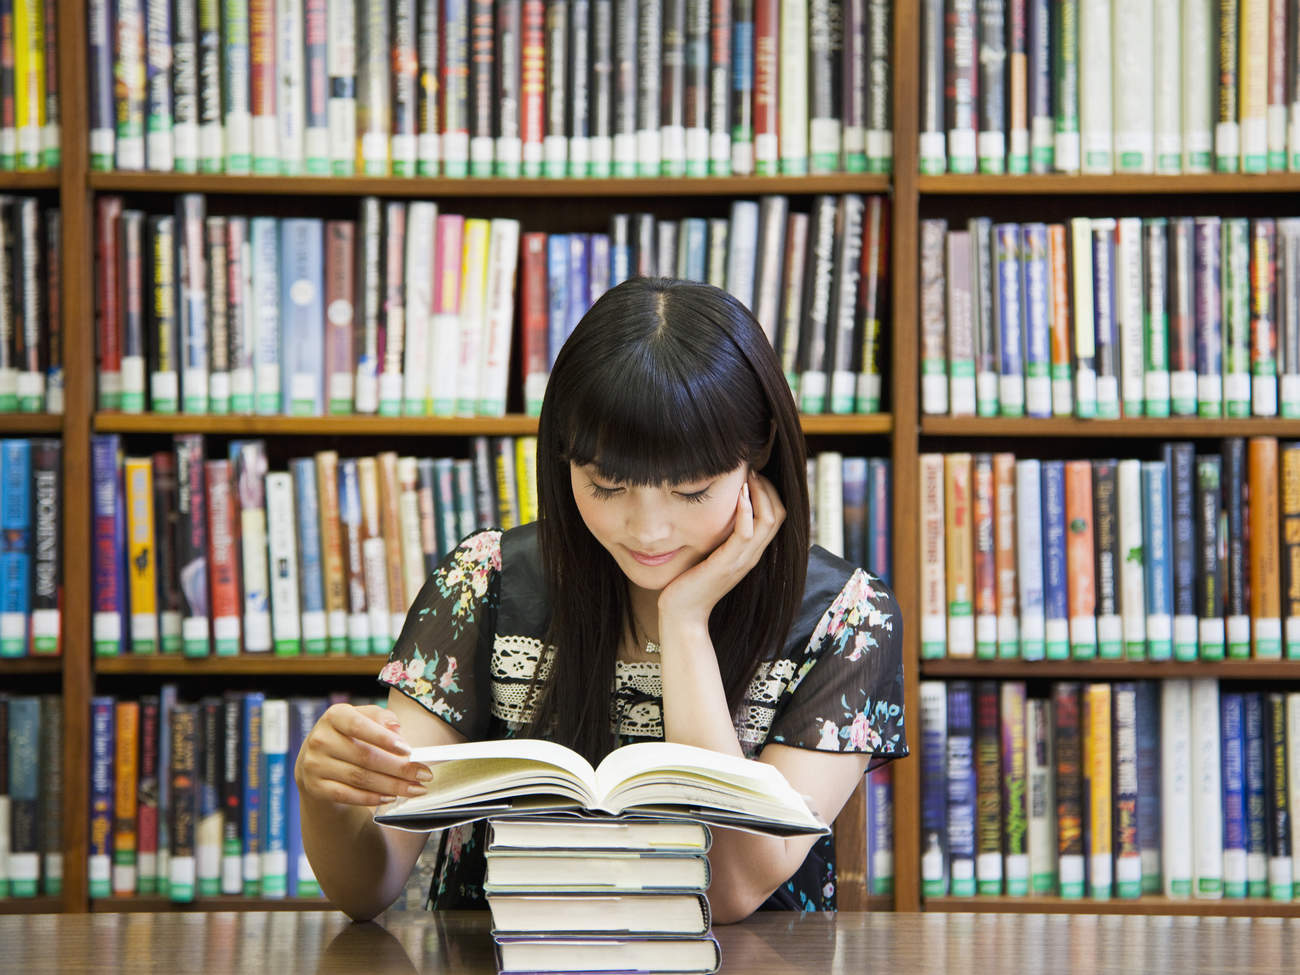 reading-memory-library-books